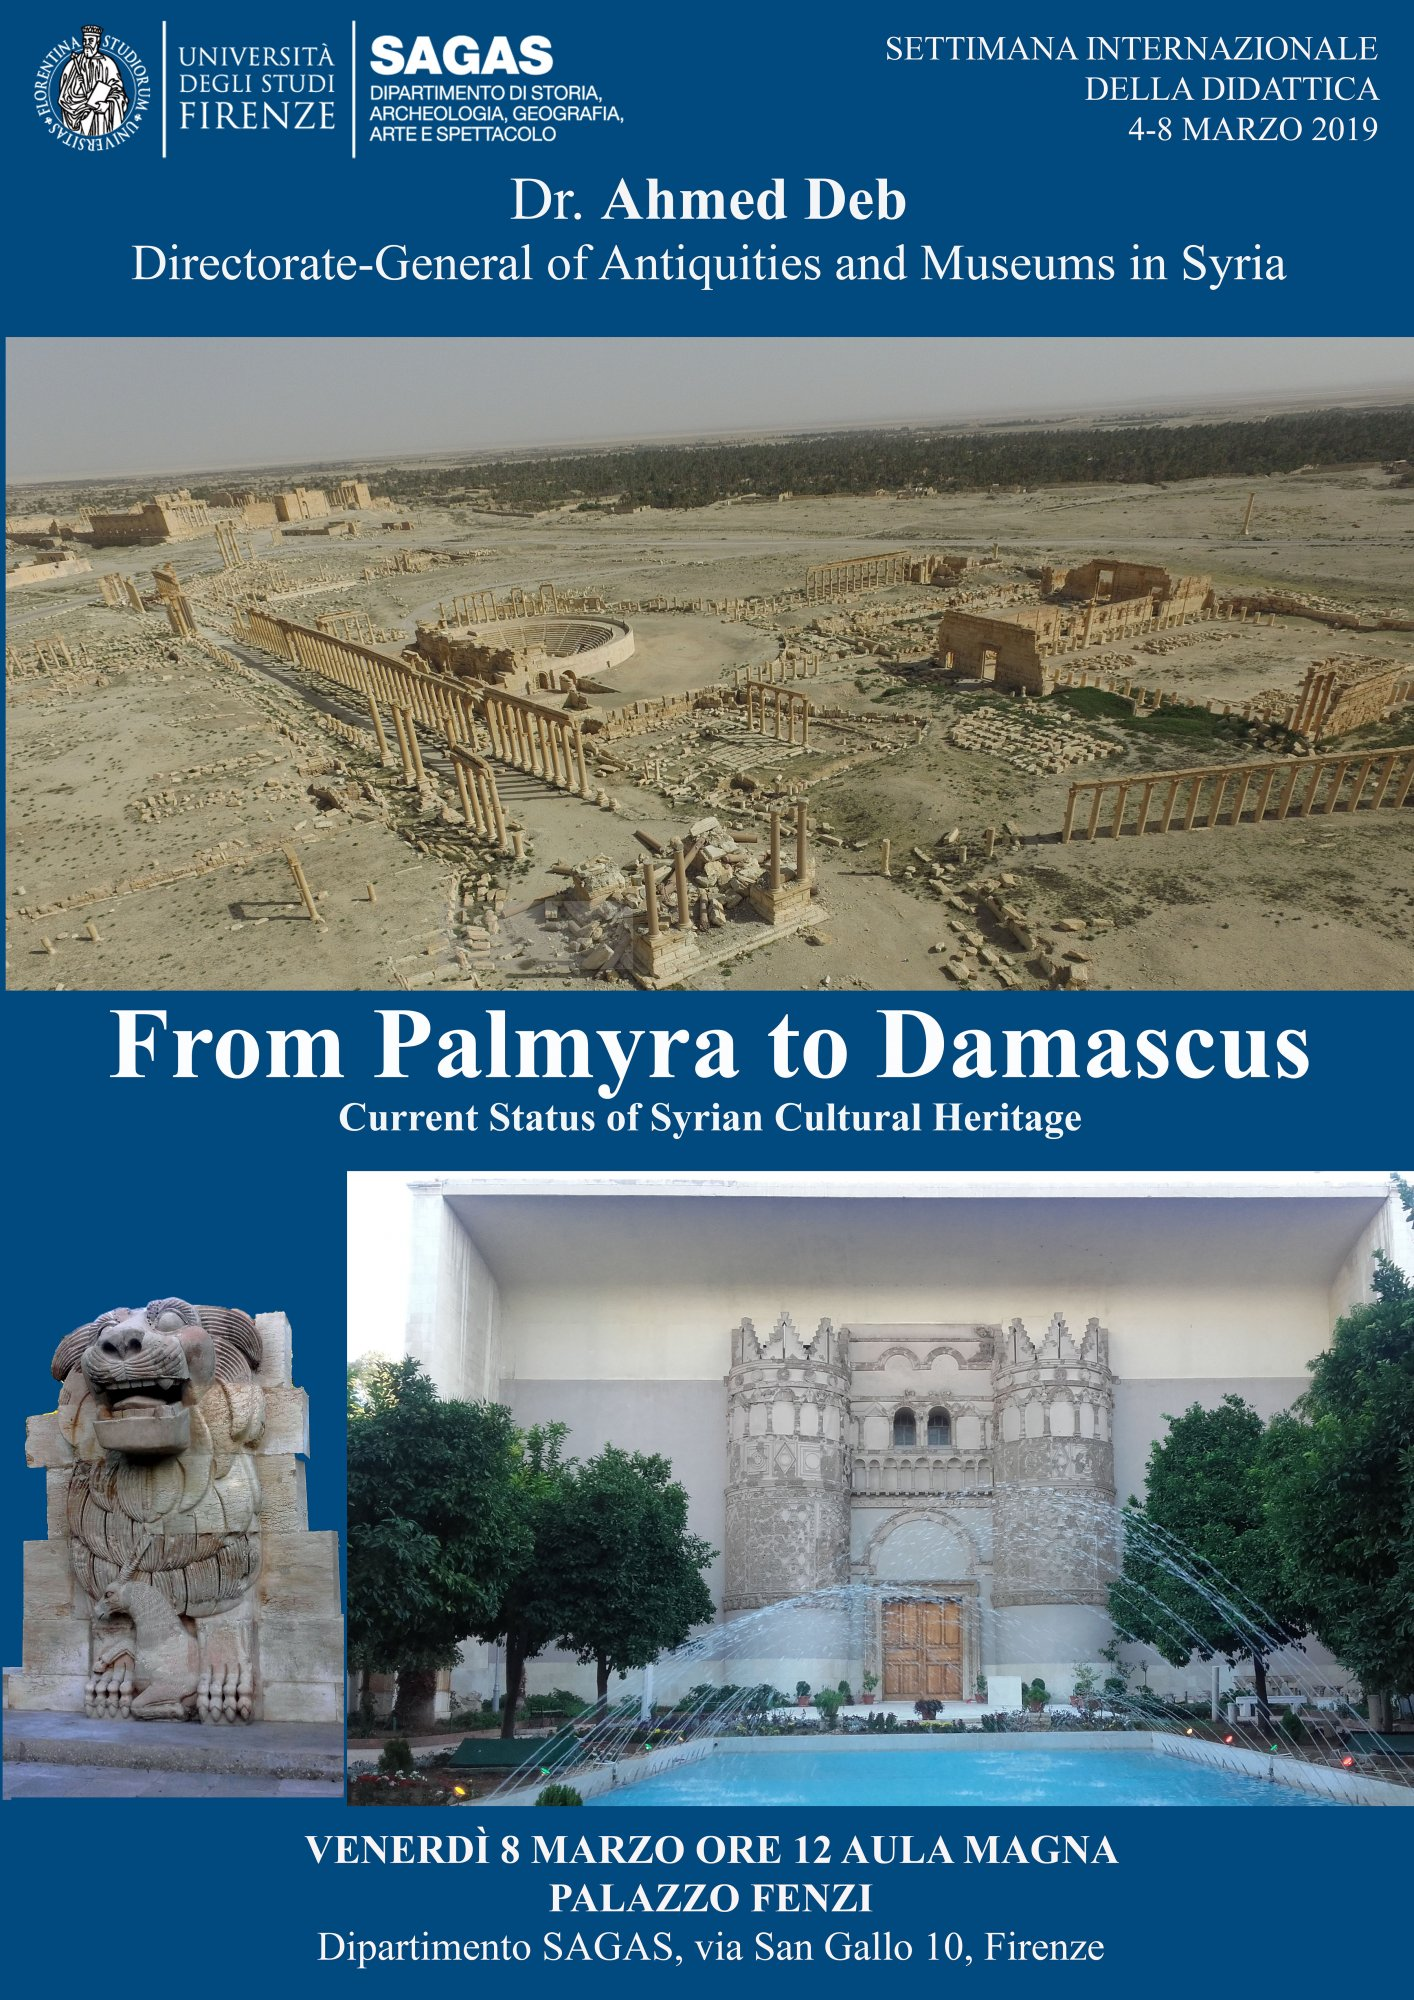 FROM PALMYRA TO DAMASCUS Current Status of Syrian Cultural Heritage